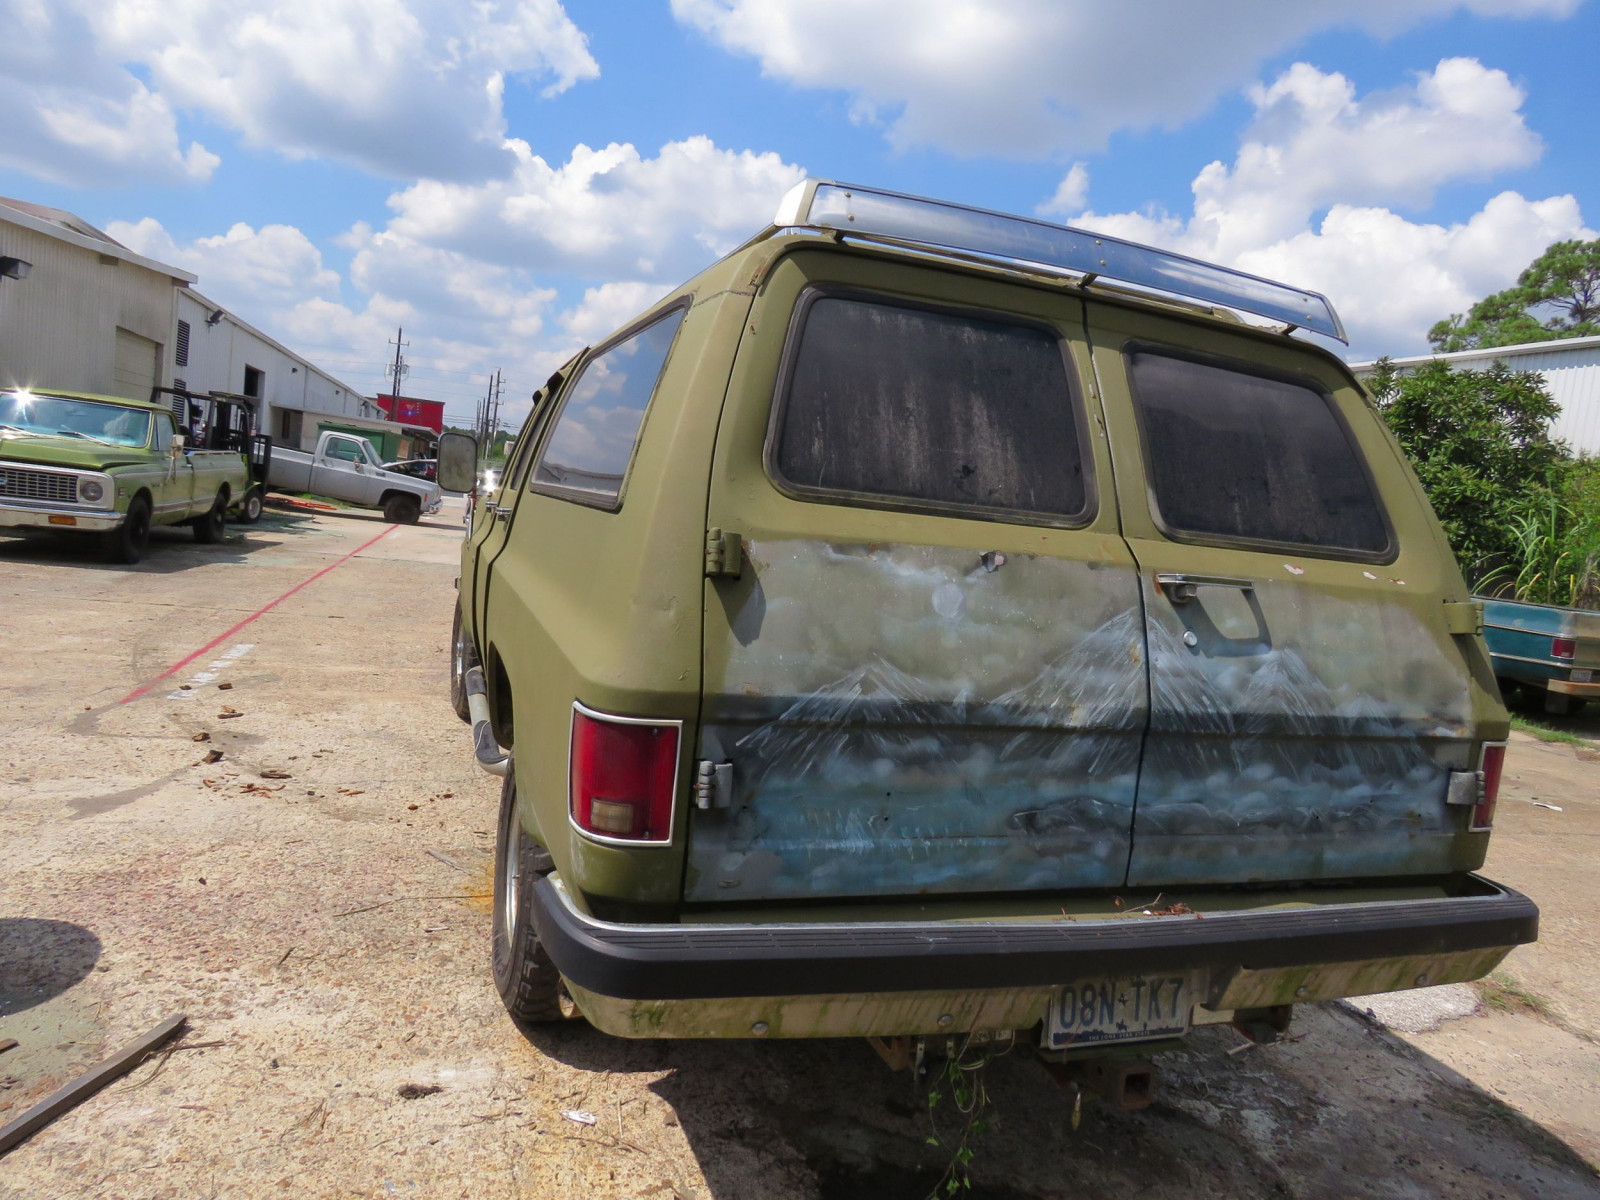 1990 Chevrolet Suburban 4x4 Project - Image 5